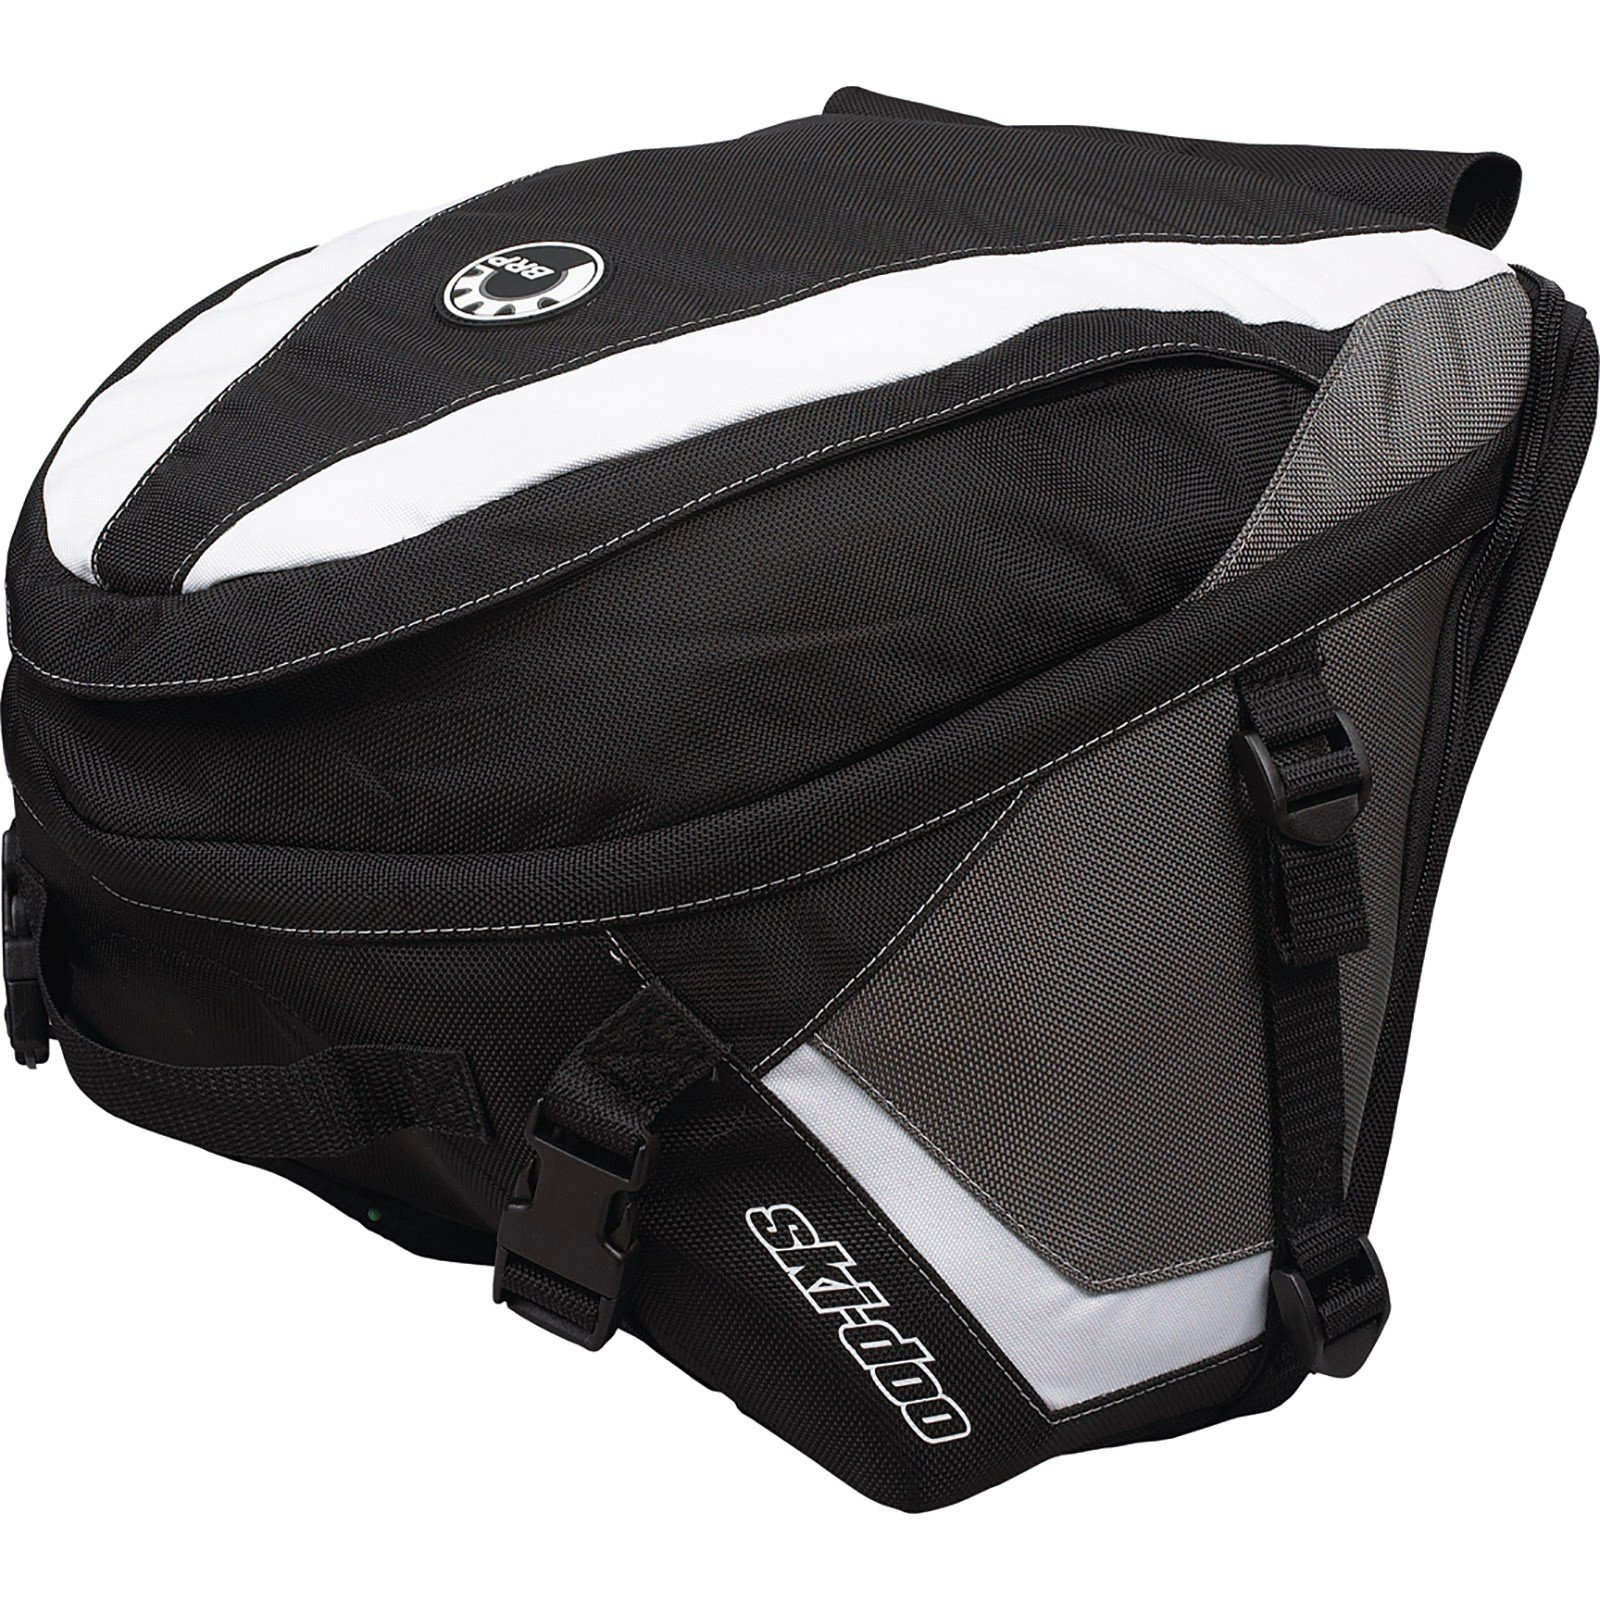 Ski-Doo 860200824 Tunnel Bag